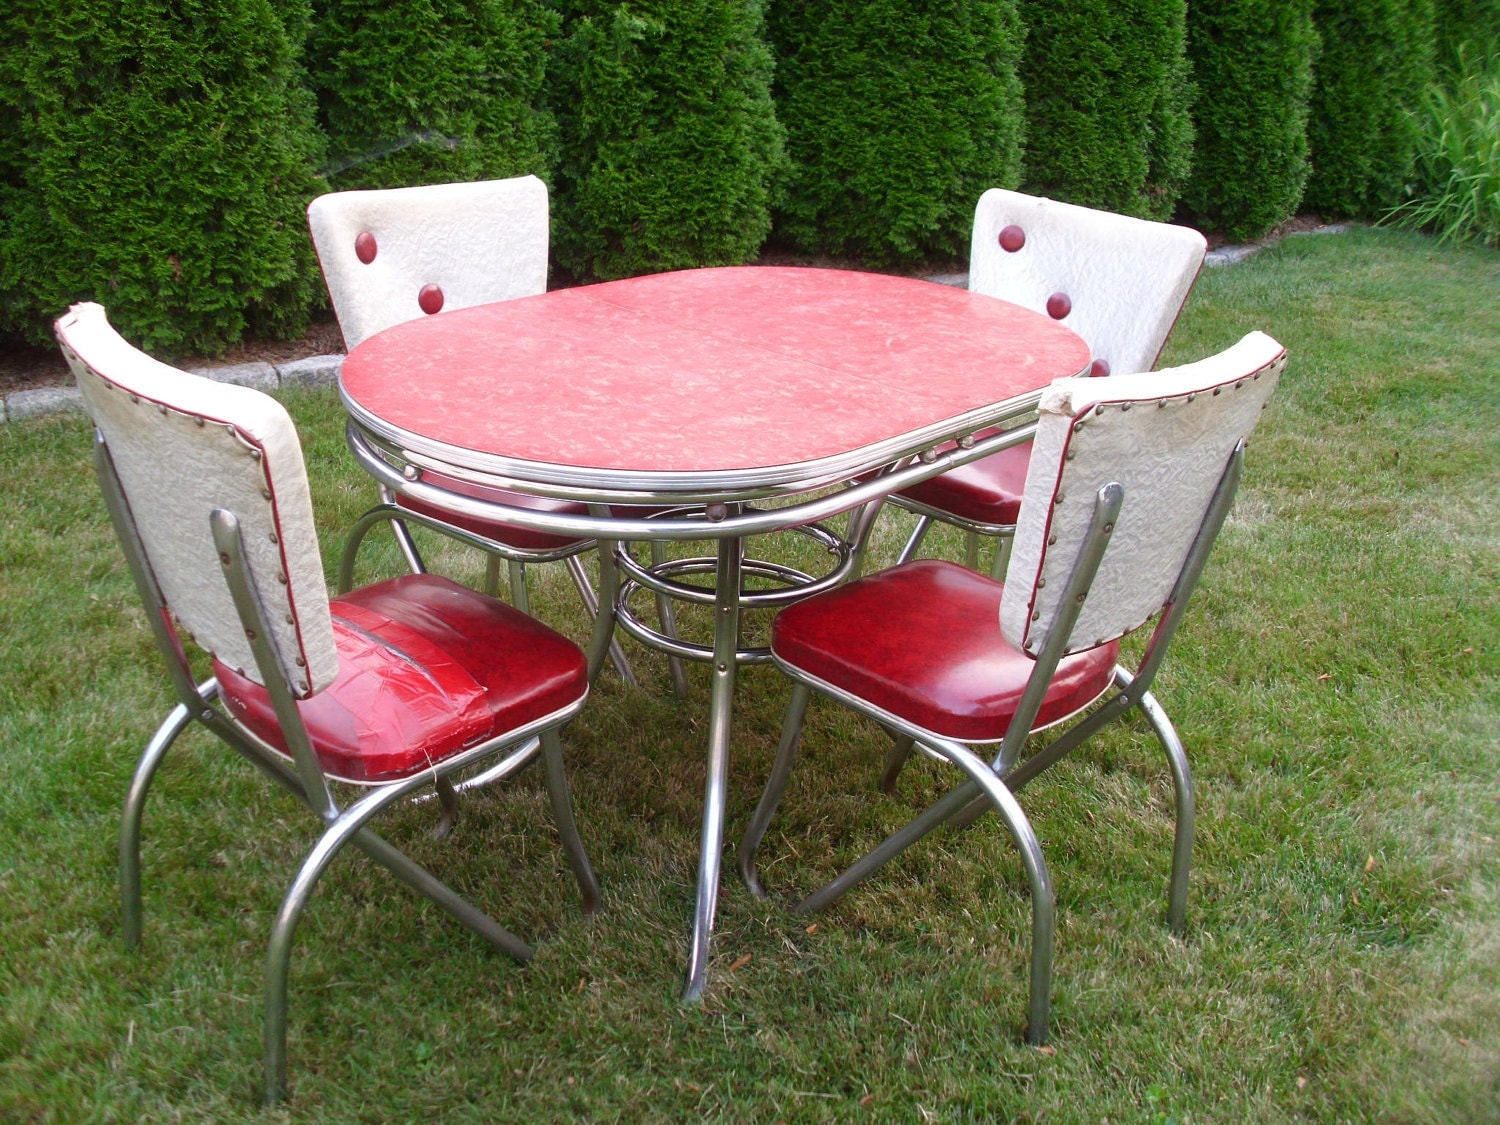 Top 1950s Retro Kitchen Table and Chairs 1500 x 1125 · 602 kB · jpeg